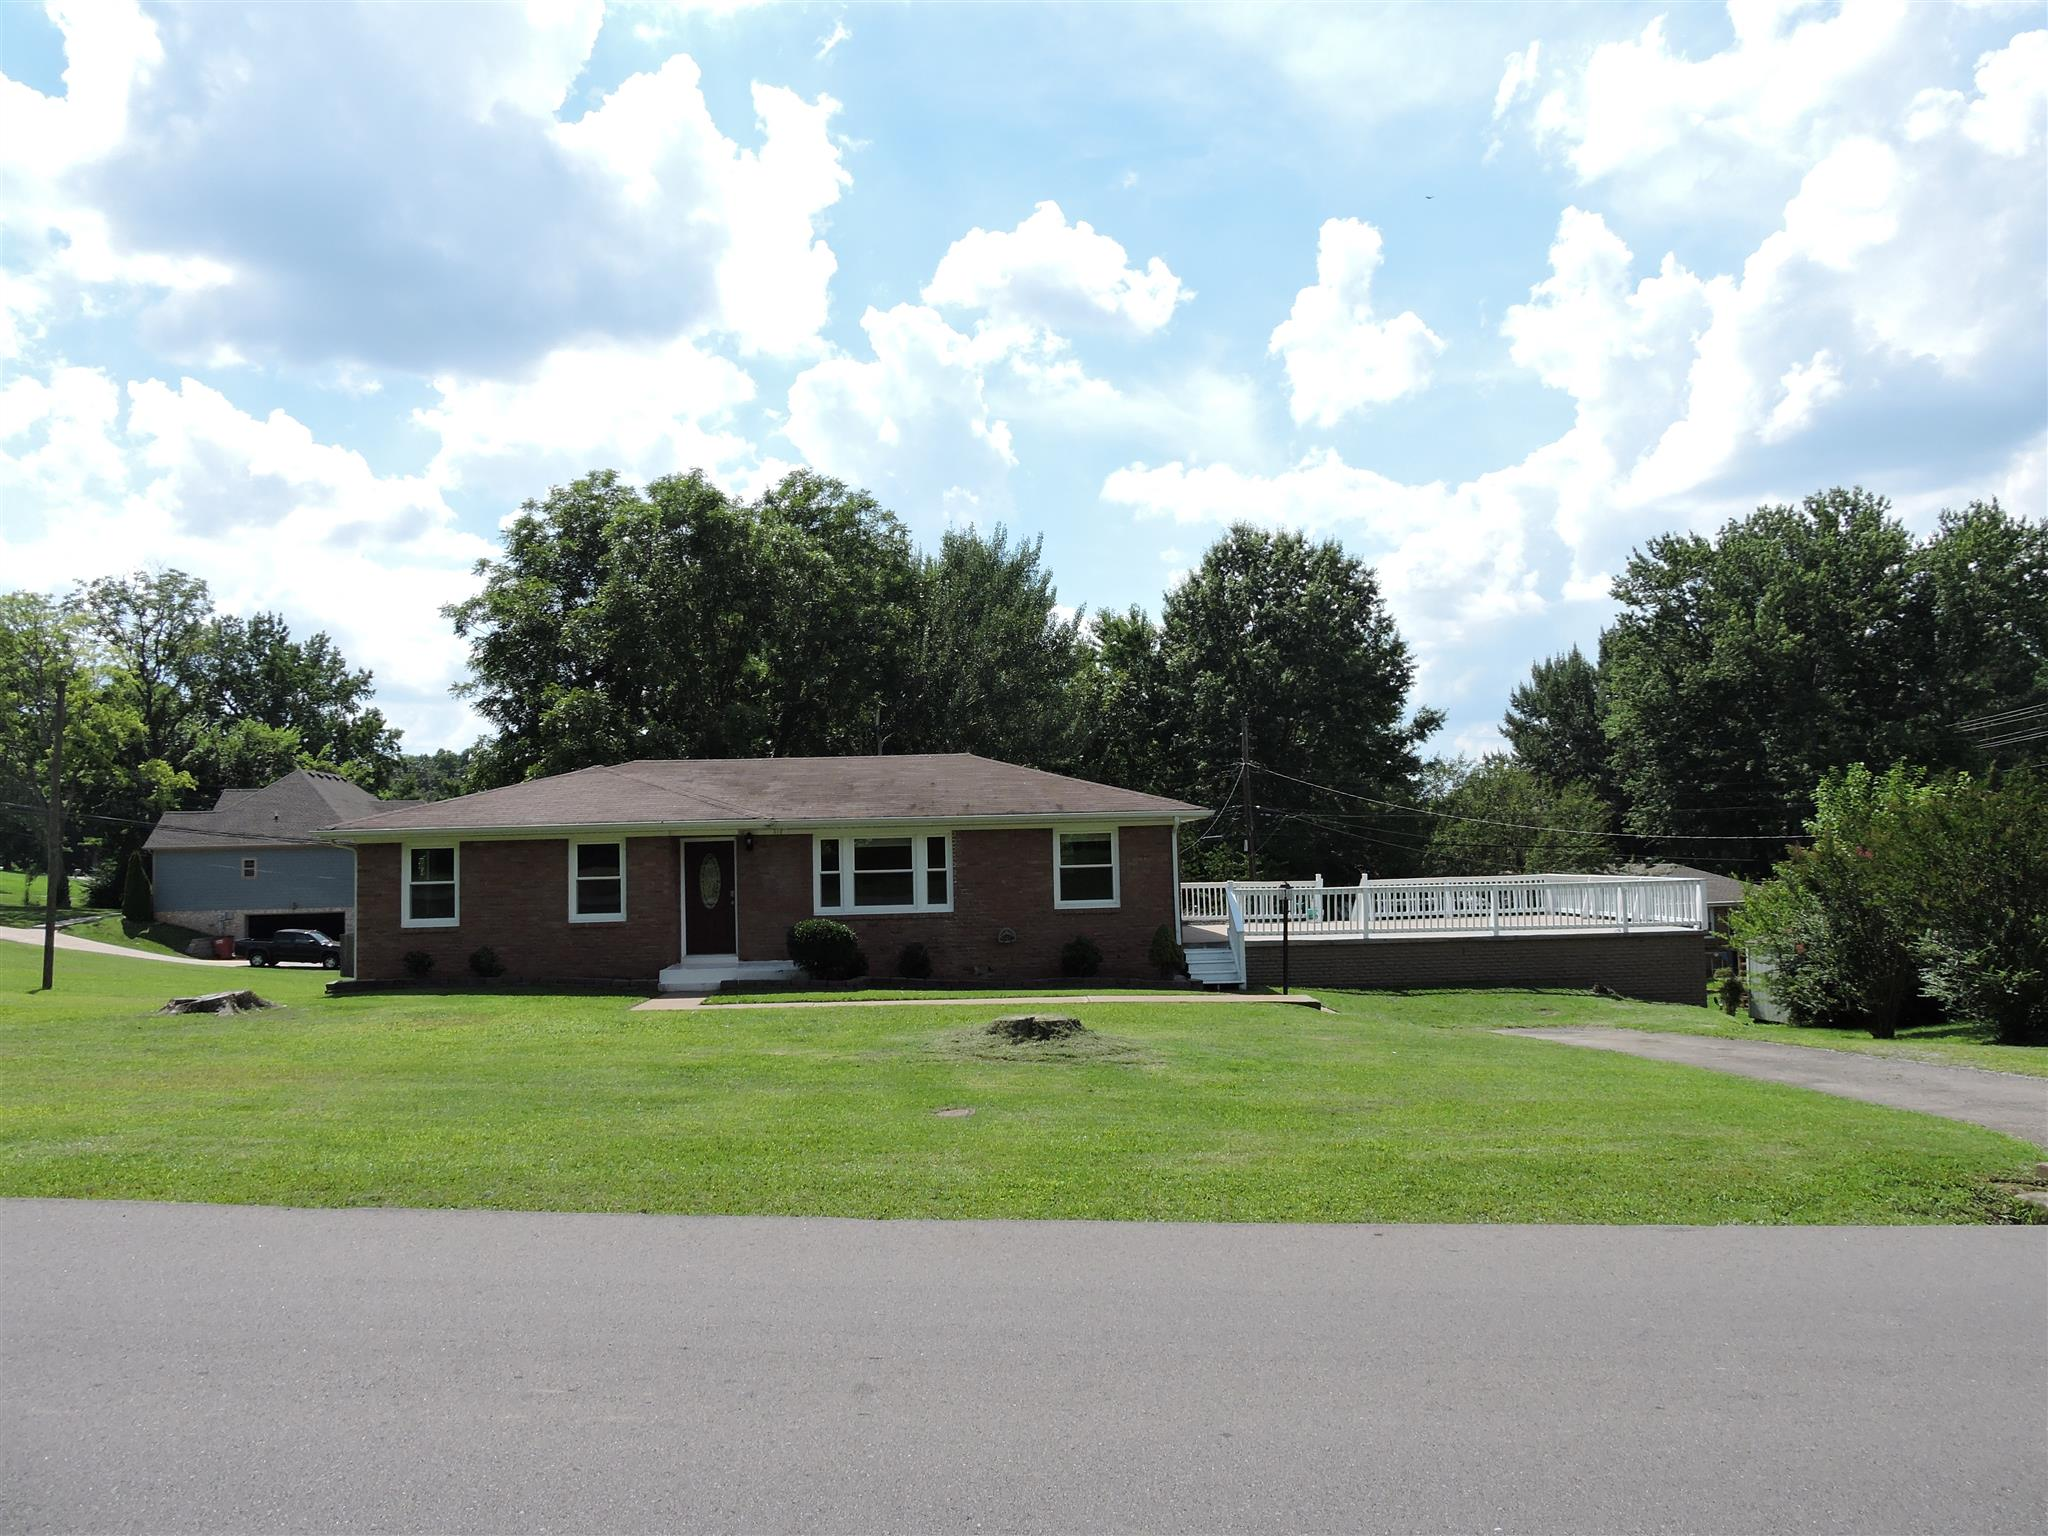 212 W Meadow Dr, Clarksville, TN 37043 - Clarksville, TN real estate listing